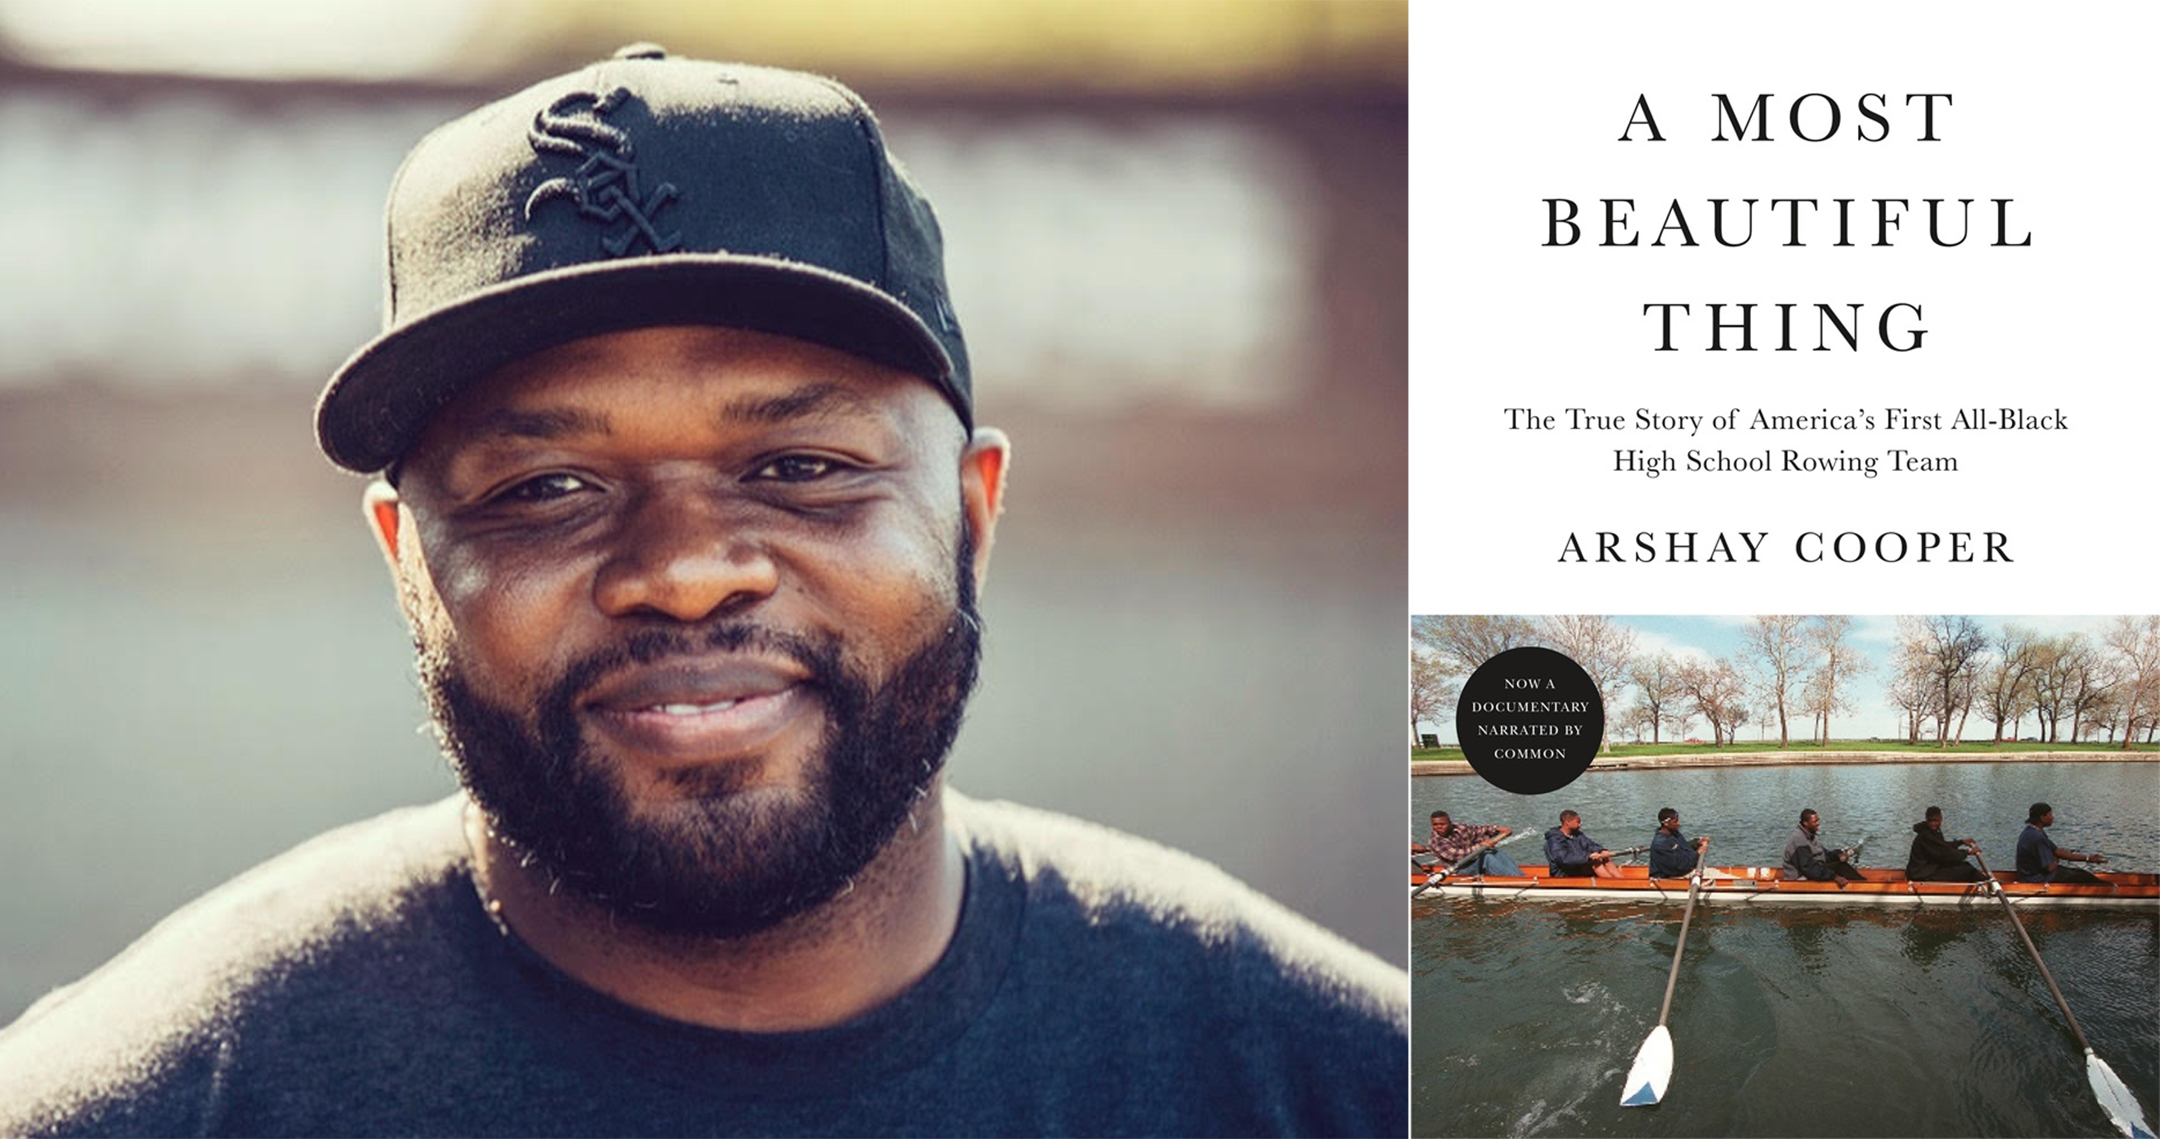 author photo of arshay cooper (left) and the cover of his book a most beautiful thing (right)